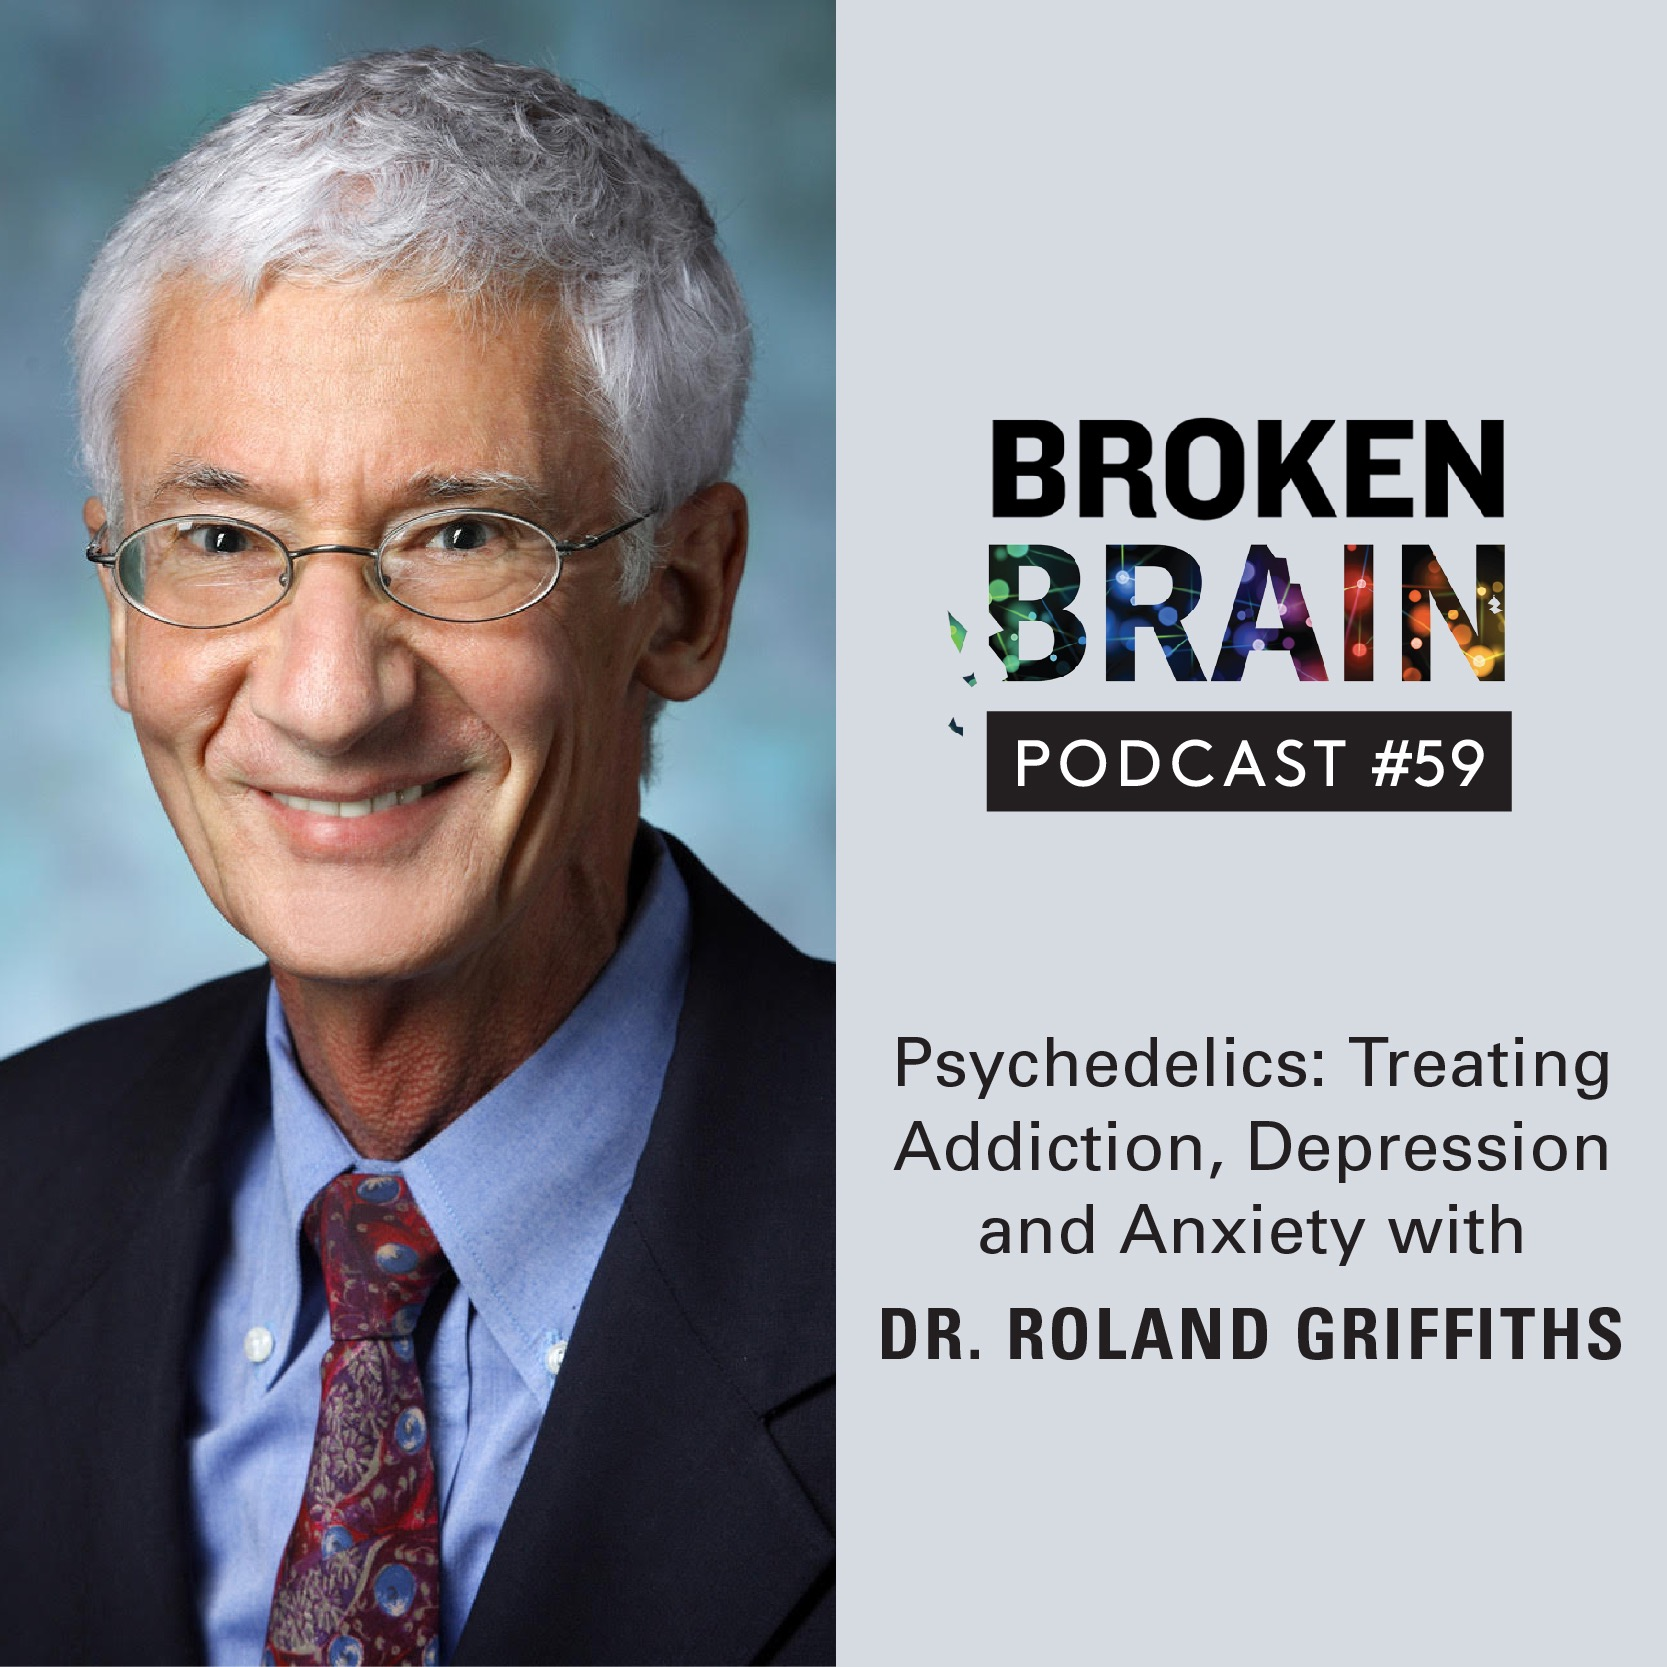 #59: Psychedelics: Treating Addiction, Depression and Anxiety with Dr. Roland Griffiths